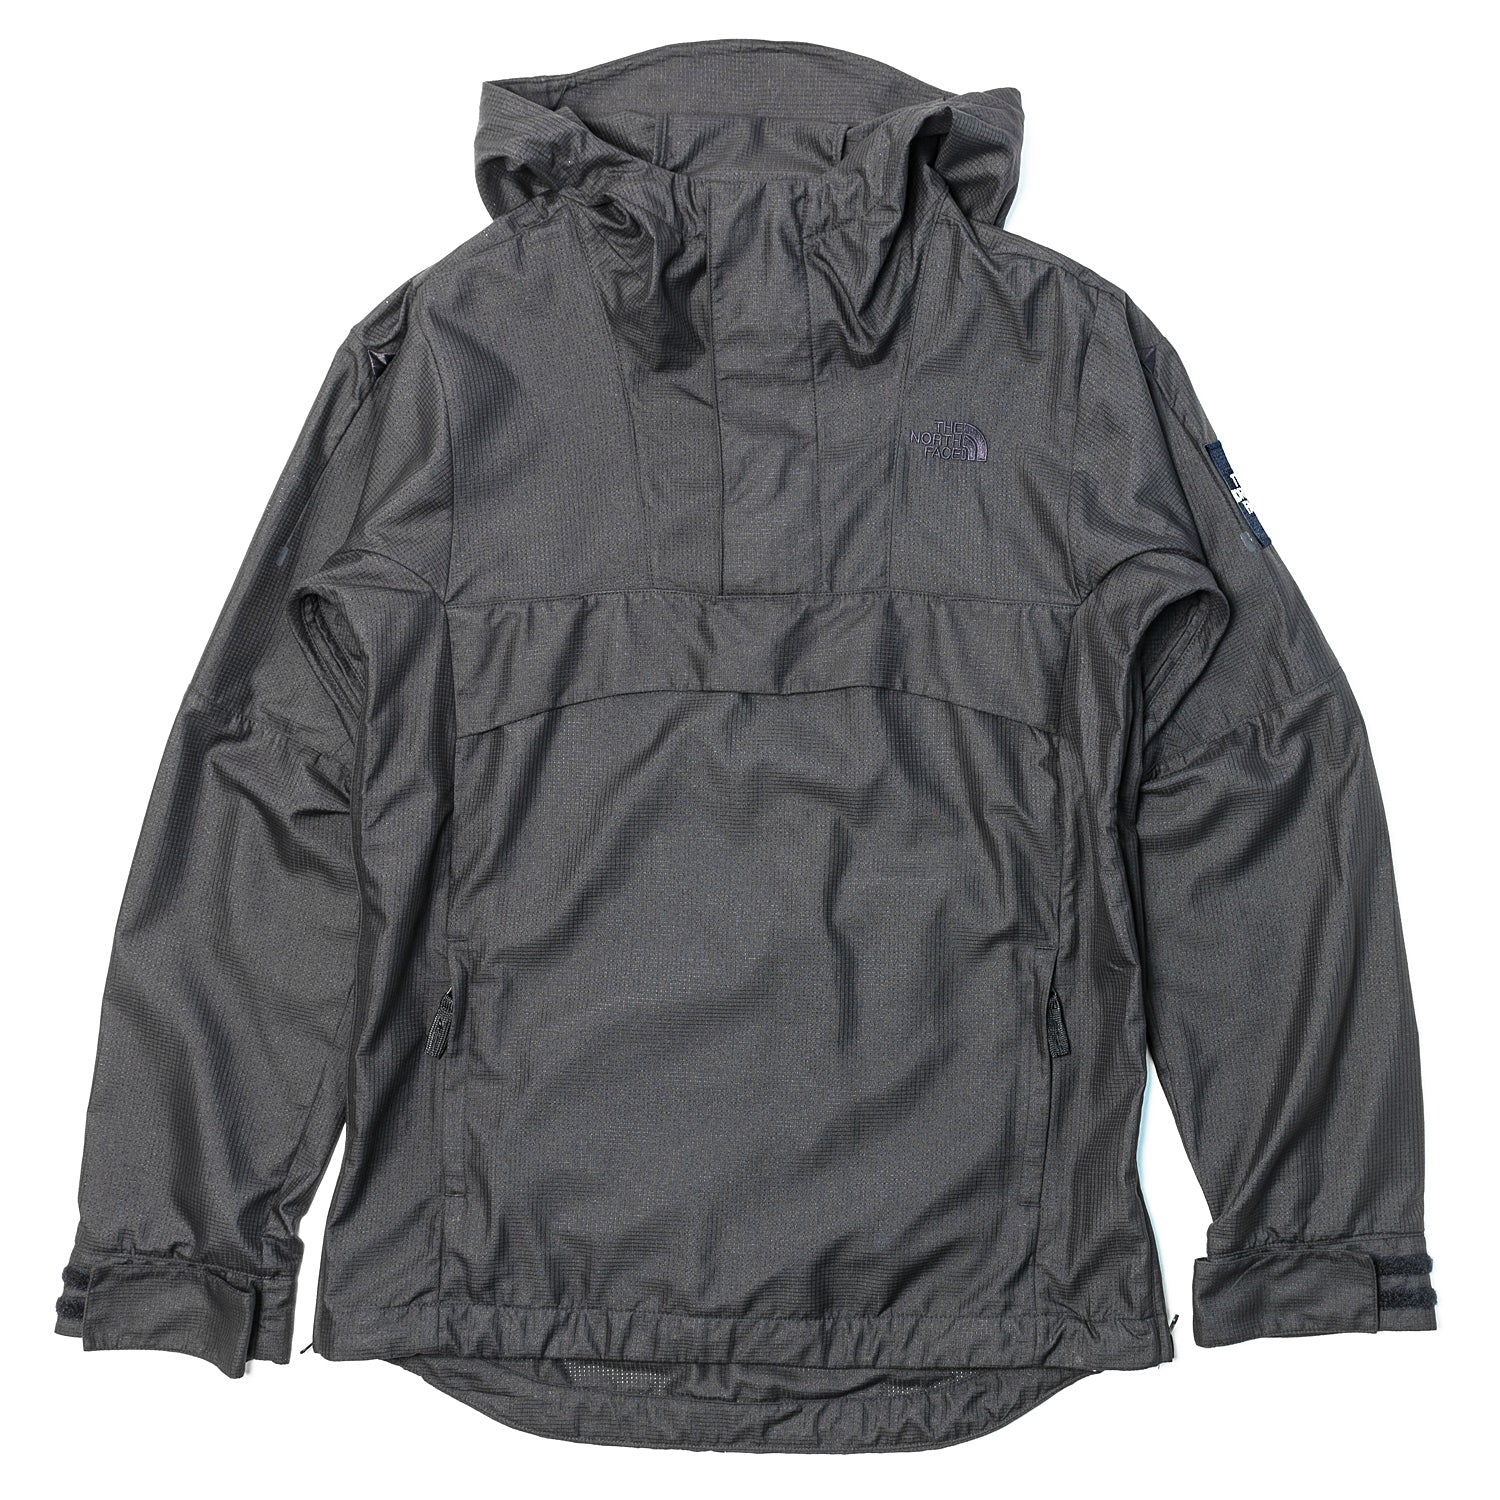 9a57c60f3 The North Face Black Series Windjammer Dot Air Pullover Jacket Black